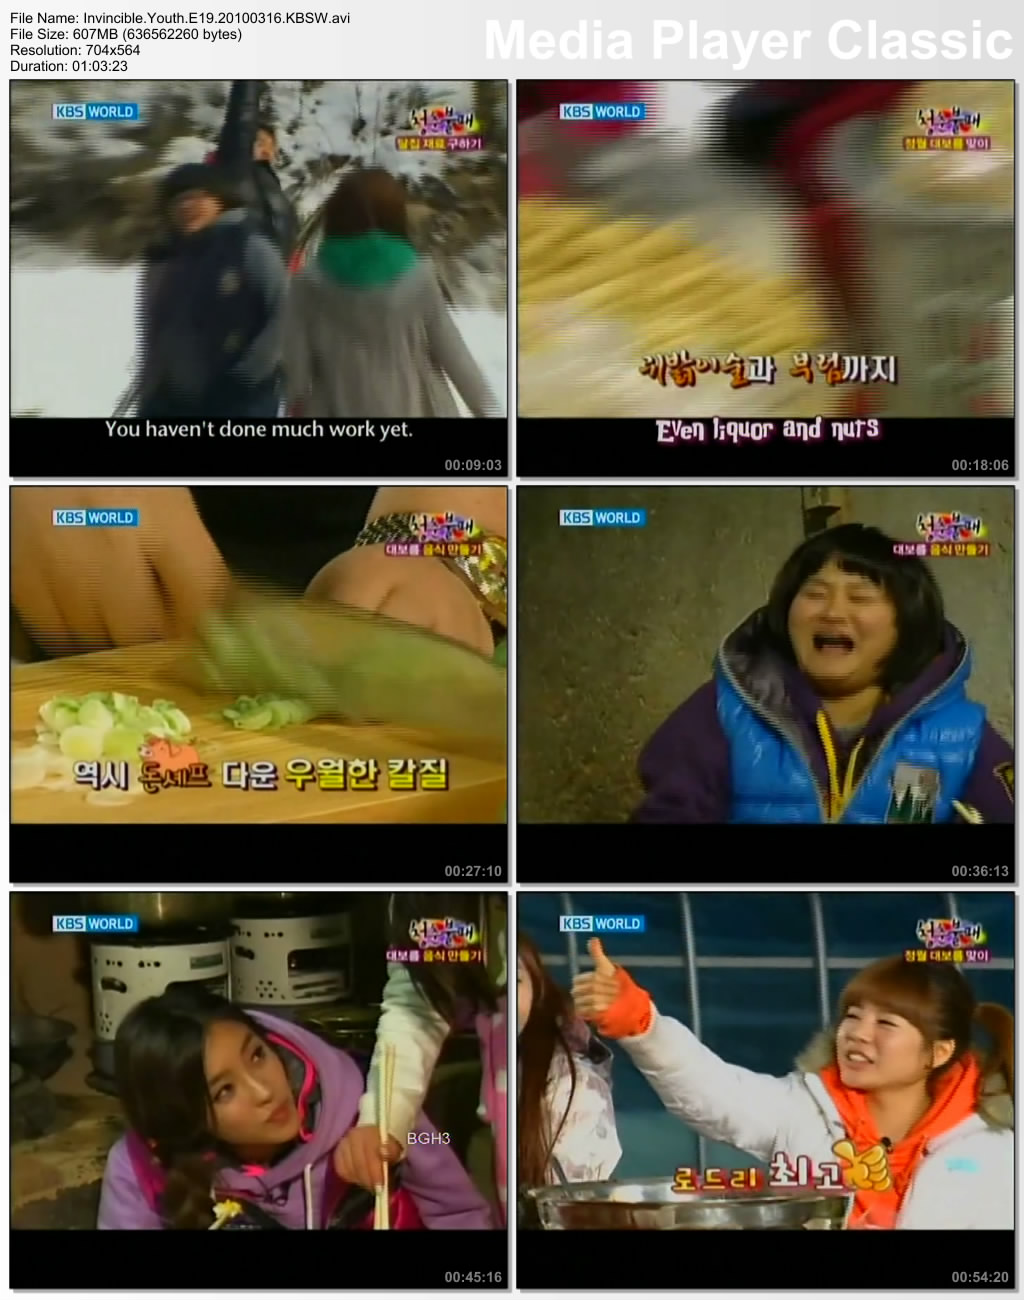 invincible youth ep 19 17 03 2010